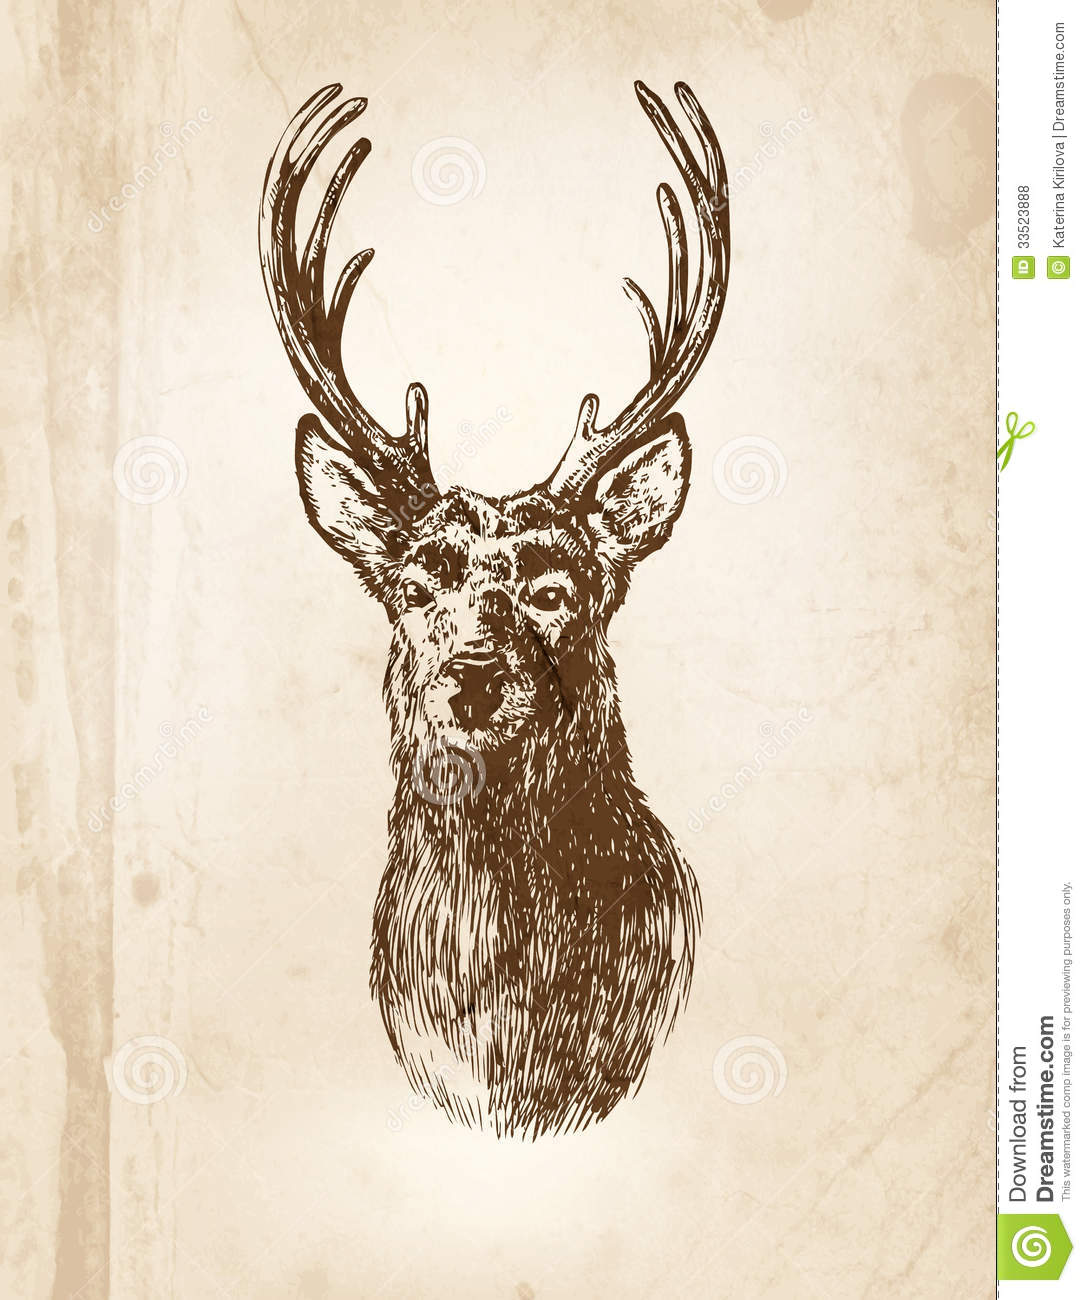 Deer Head Stock Photos And Images  123RF